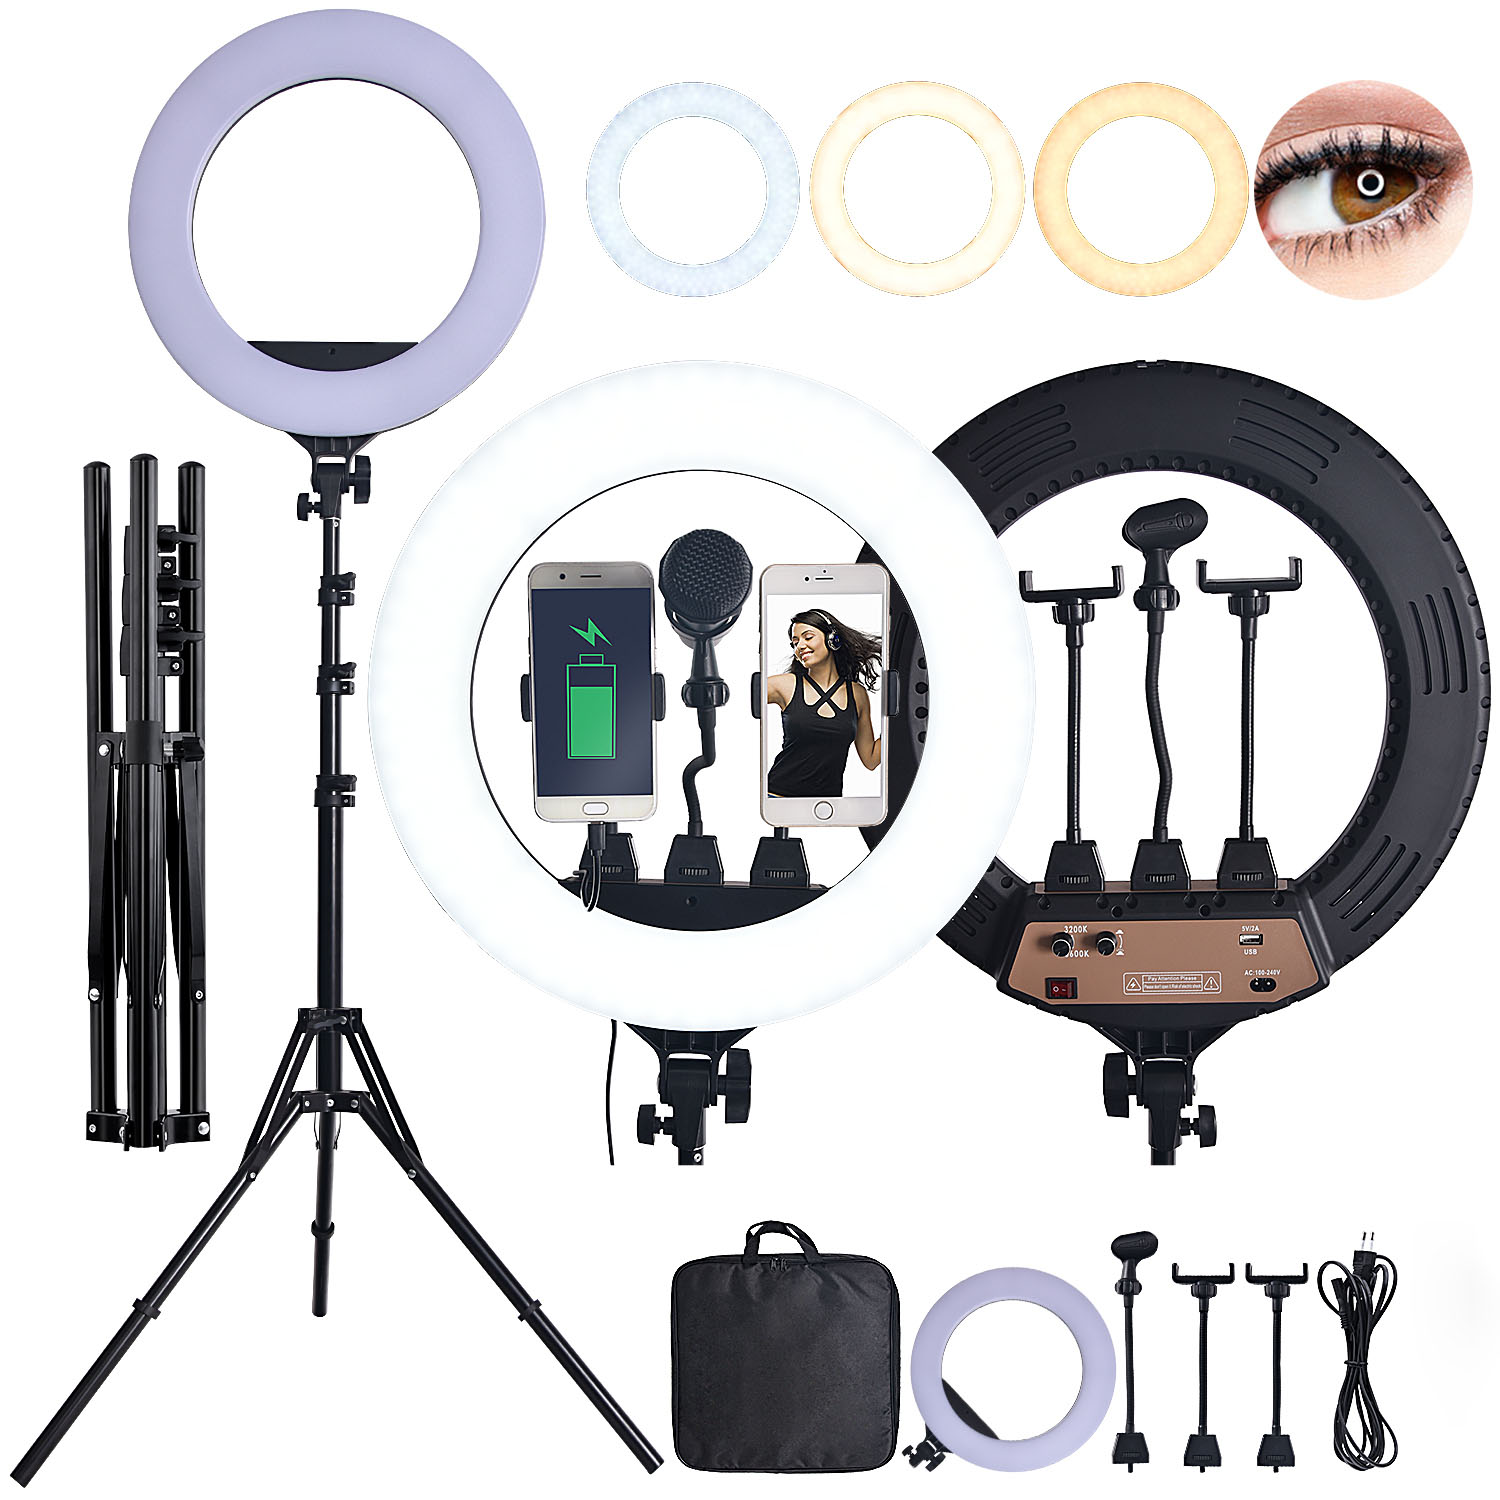 Fosoto 18 Inch LED Ring Light 4